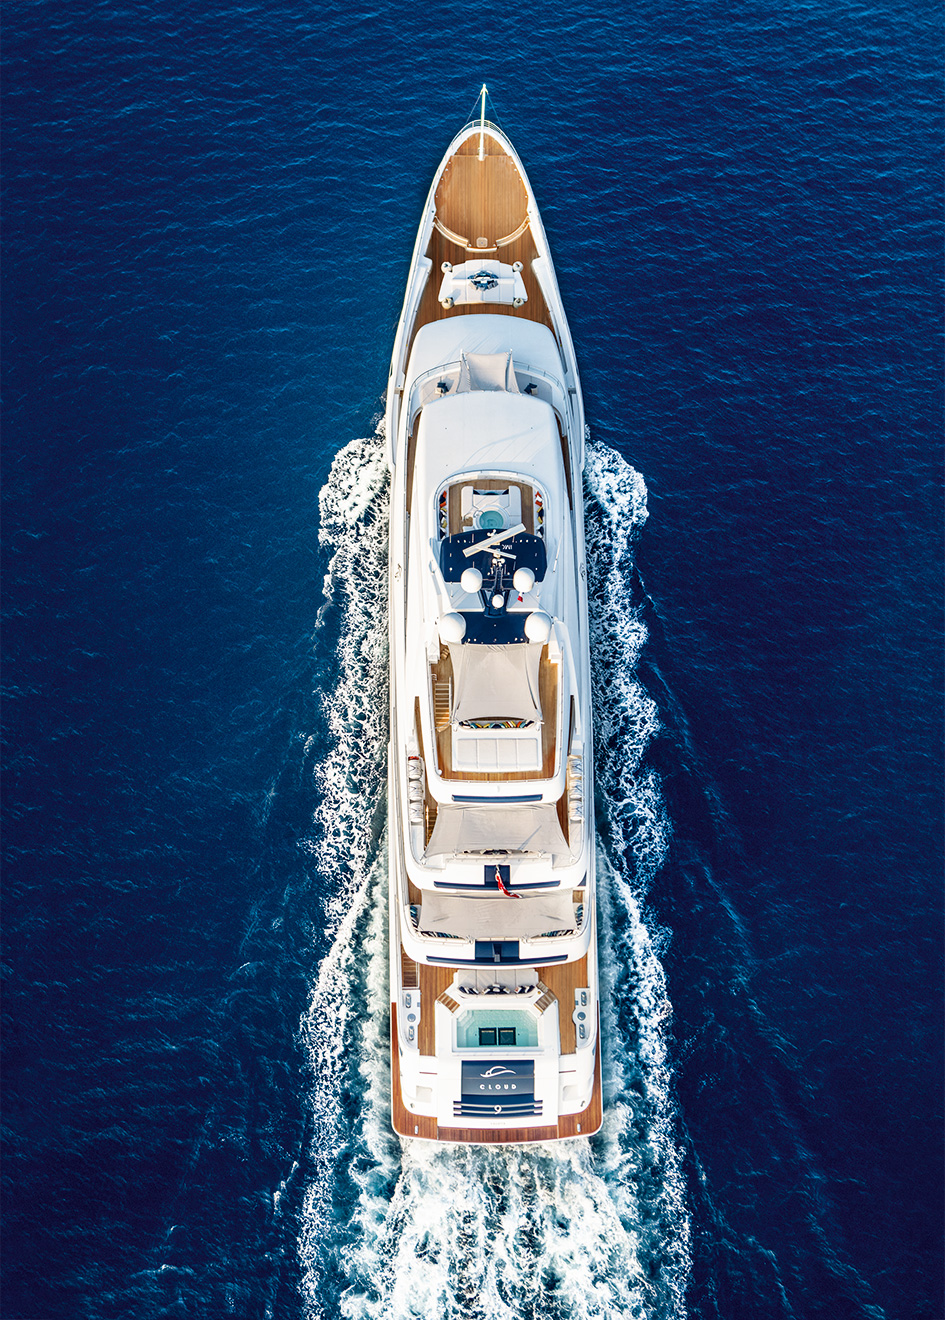 aerial-view-of-the-crn-superyacht-cloud-9-credit-maurizio-paradisi